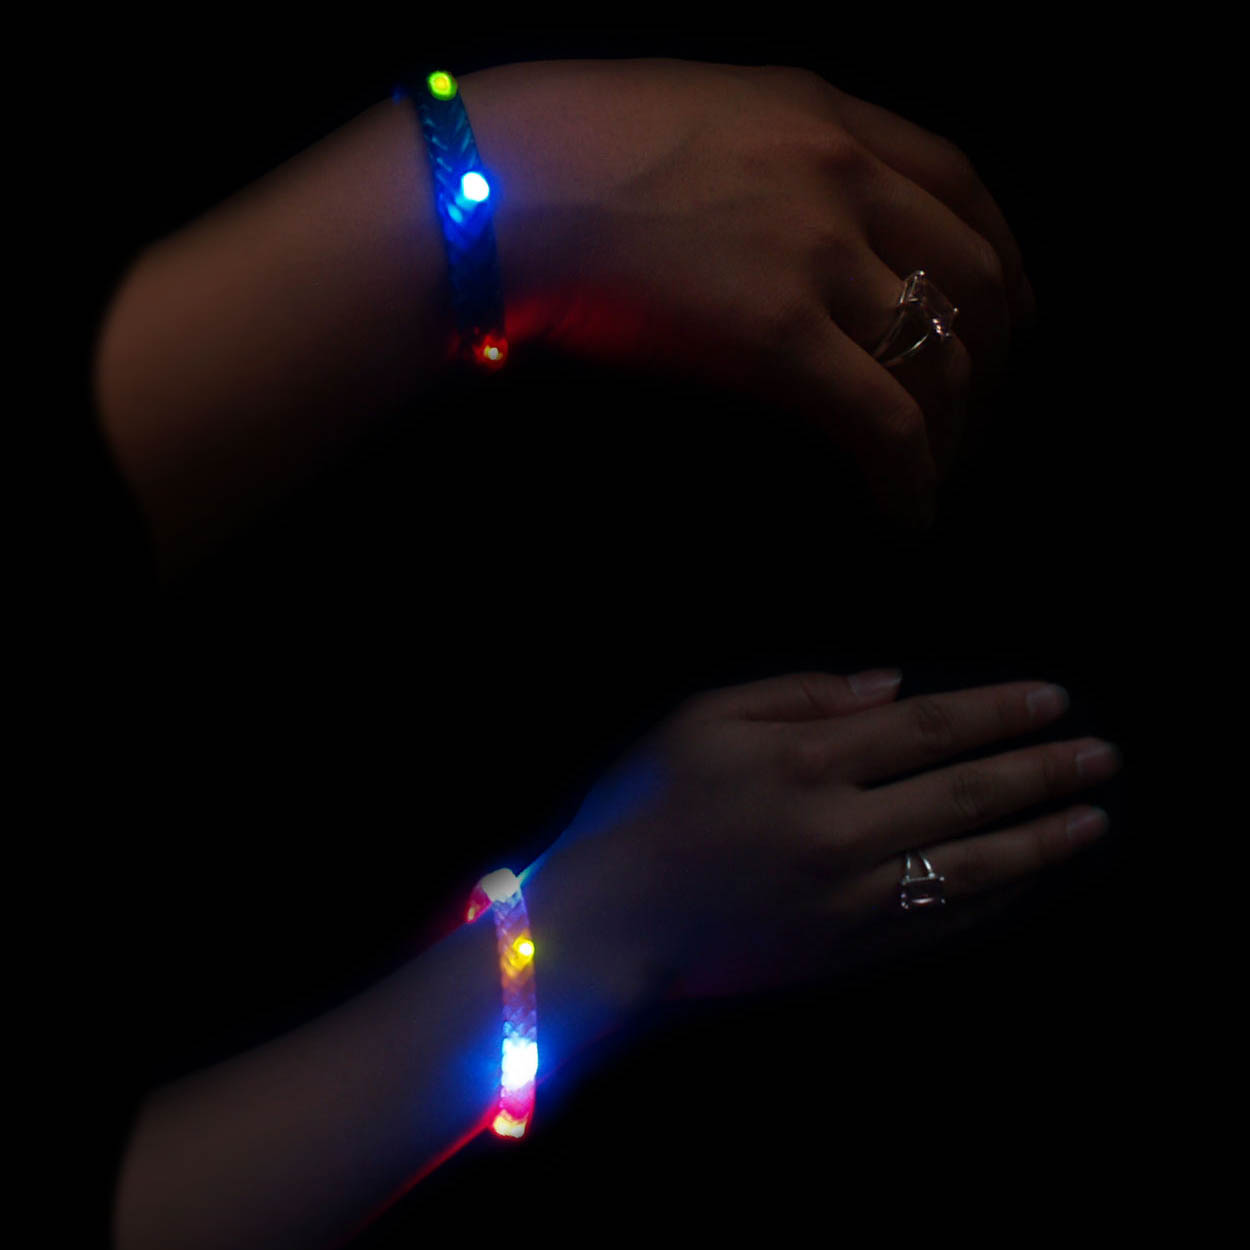 Braided LED Flashing Multicolor Light Up Bracelet - Wholesale lot of 288 bracelets